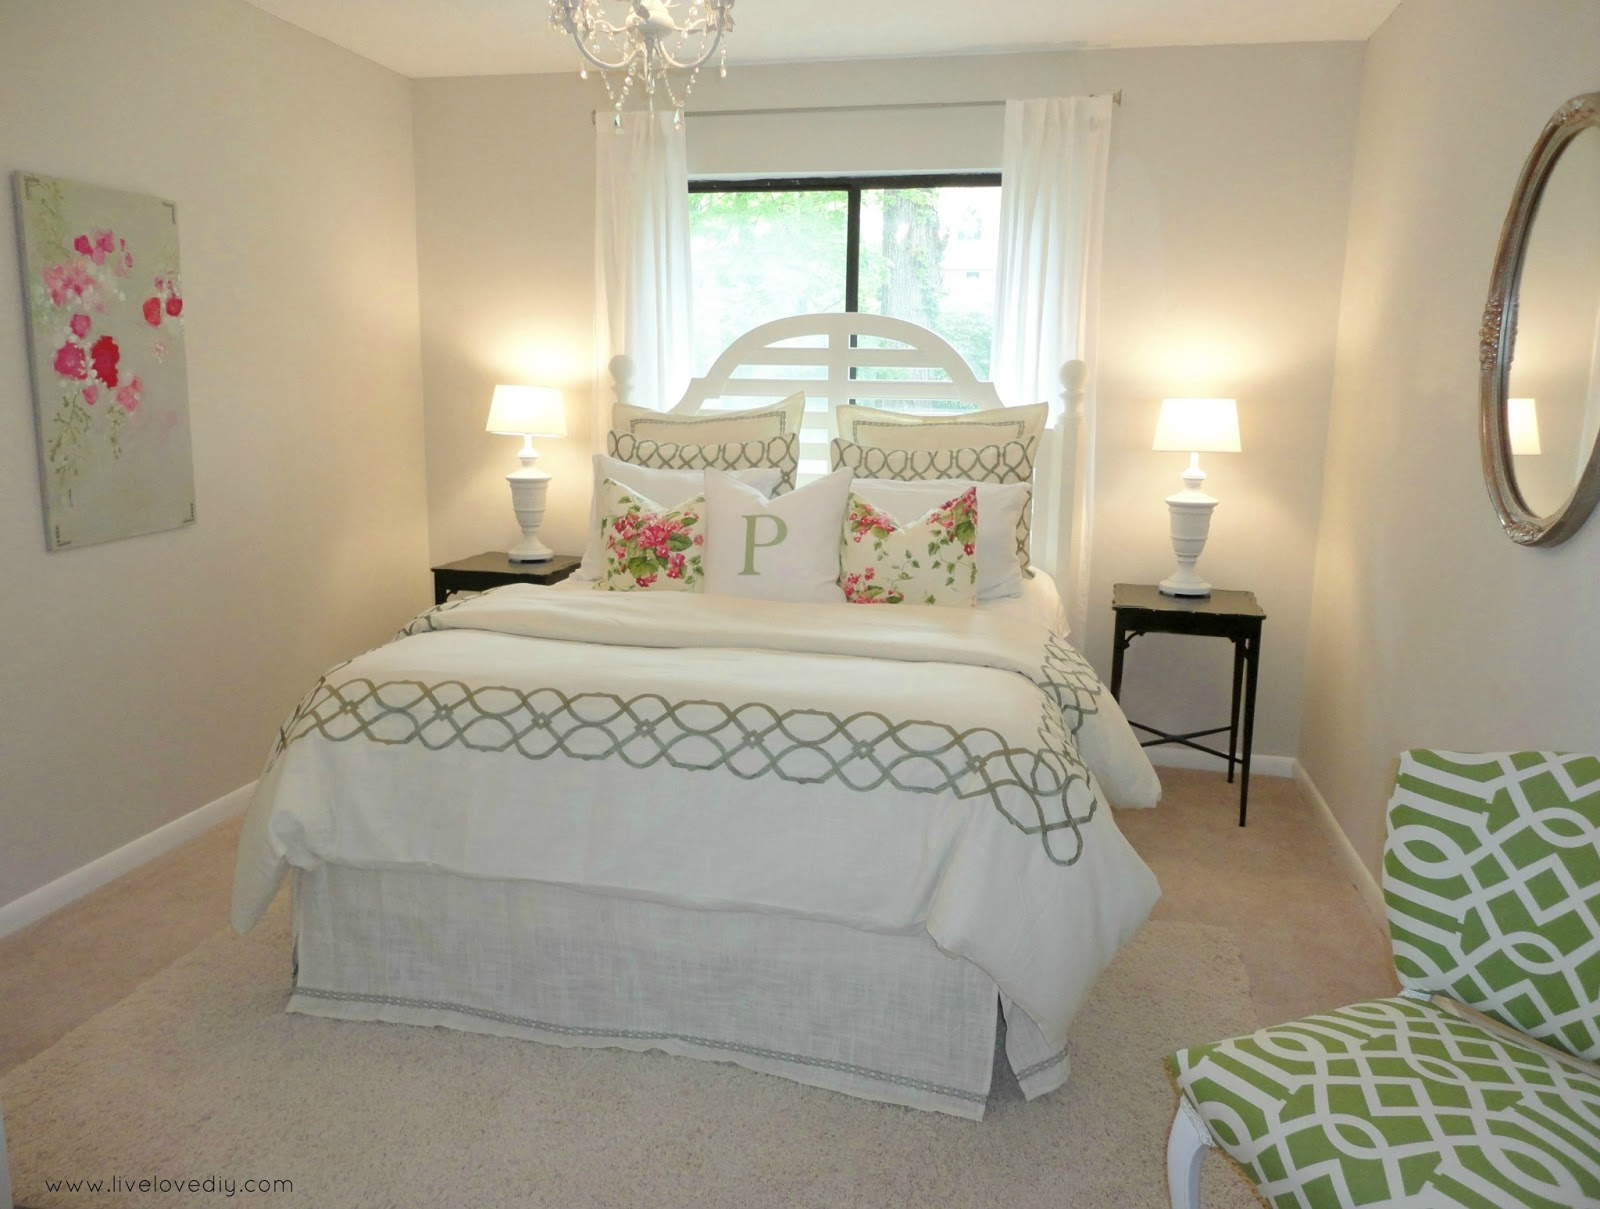 decorating bedrooms with secondhand finds the guest bedroom reveal - Guest Bedroom Decorating Ideas And Pictures